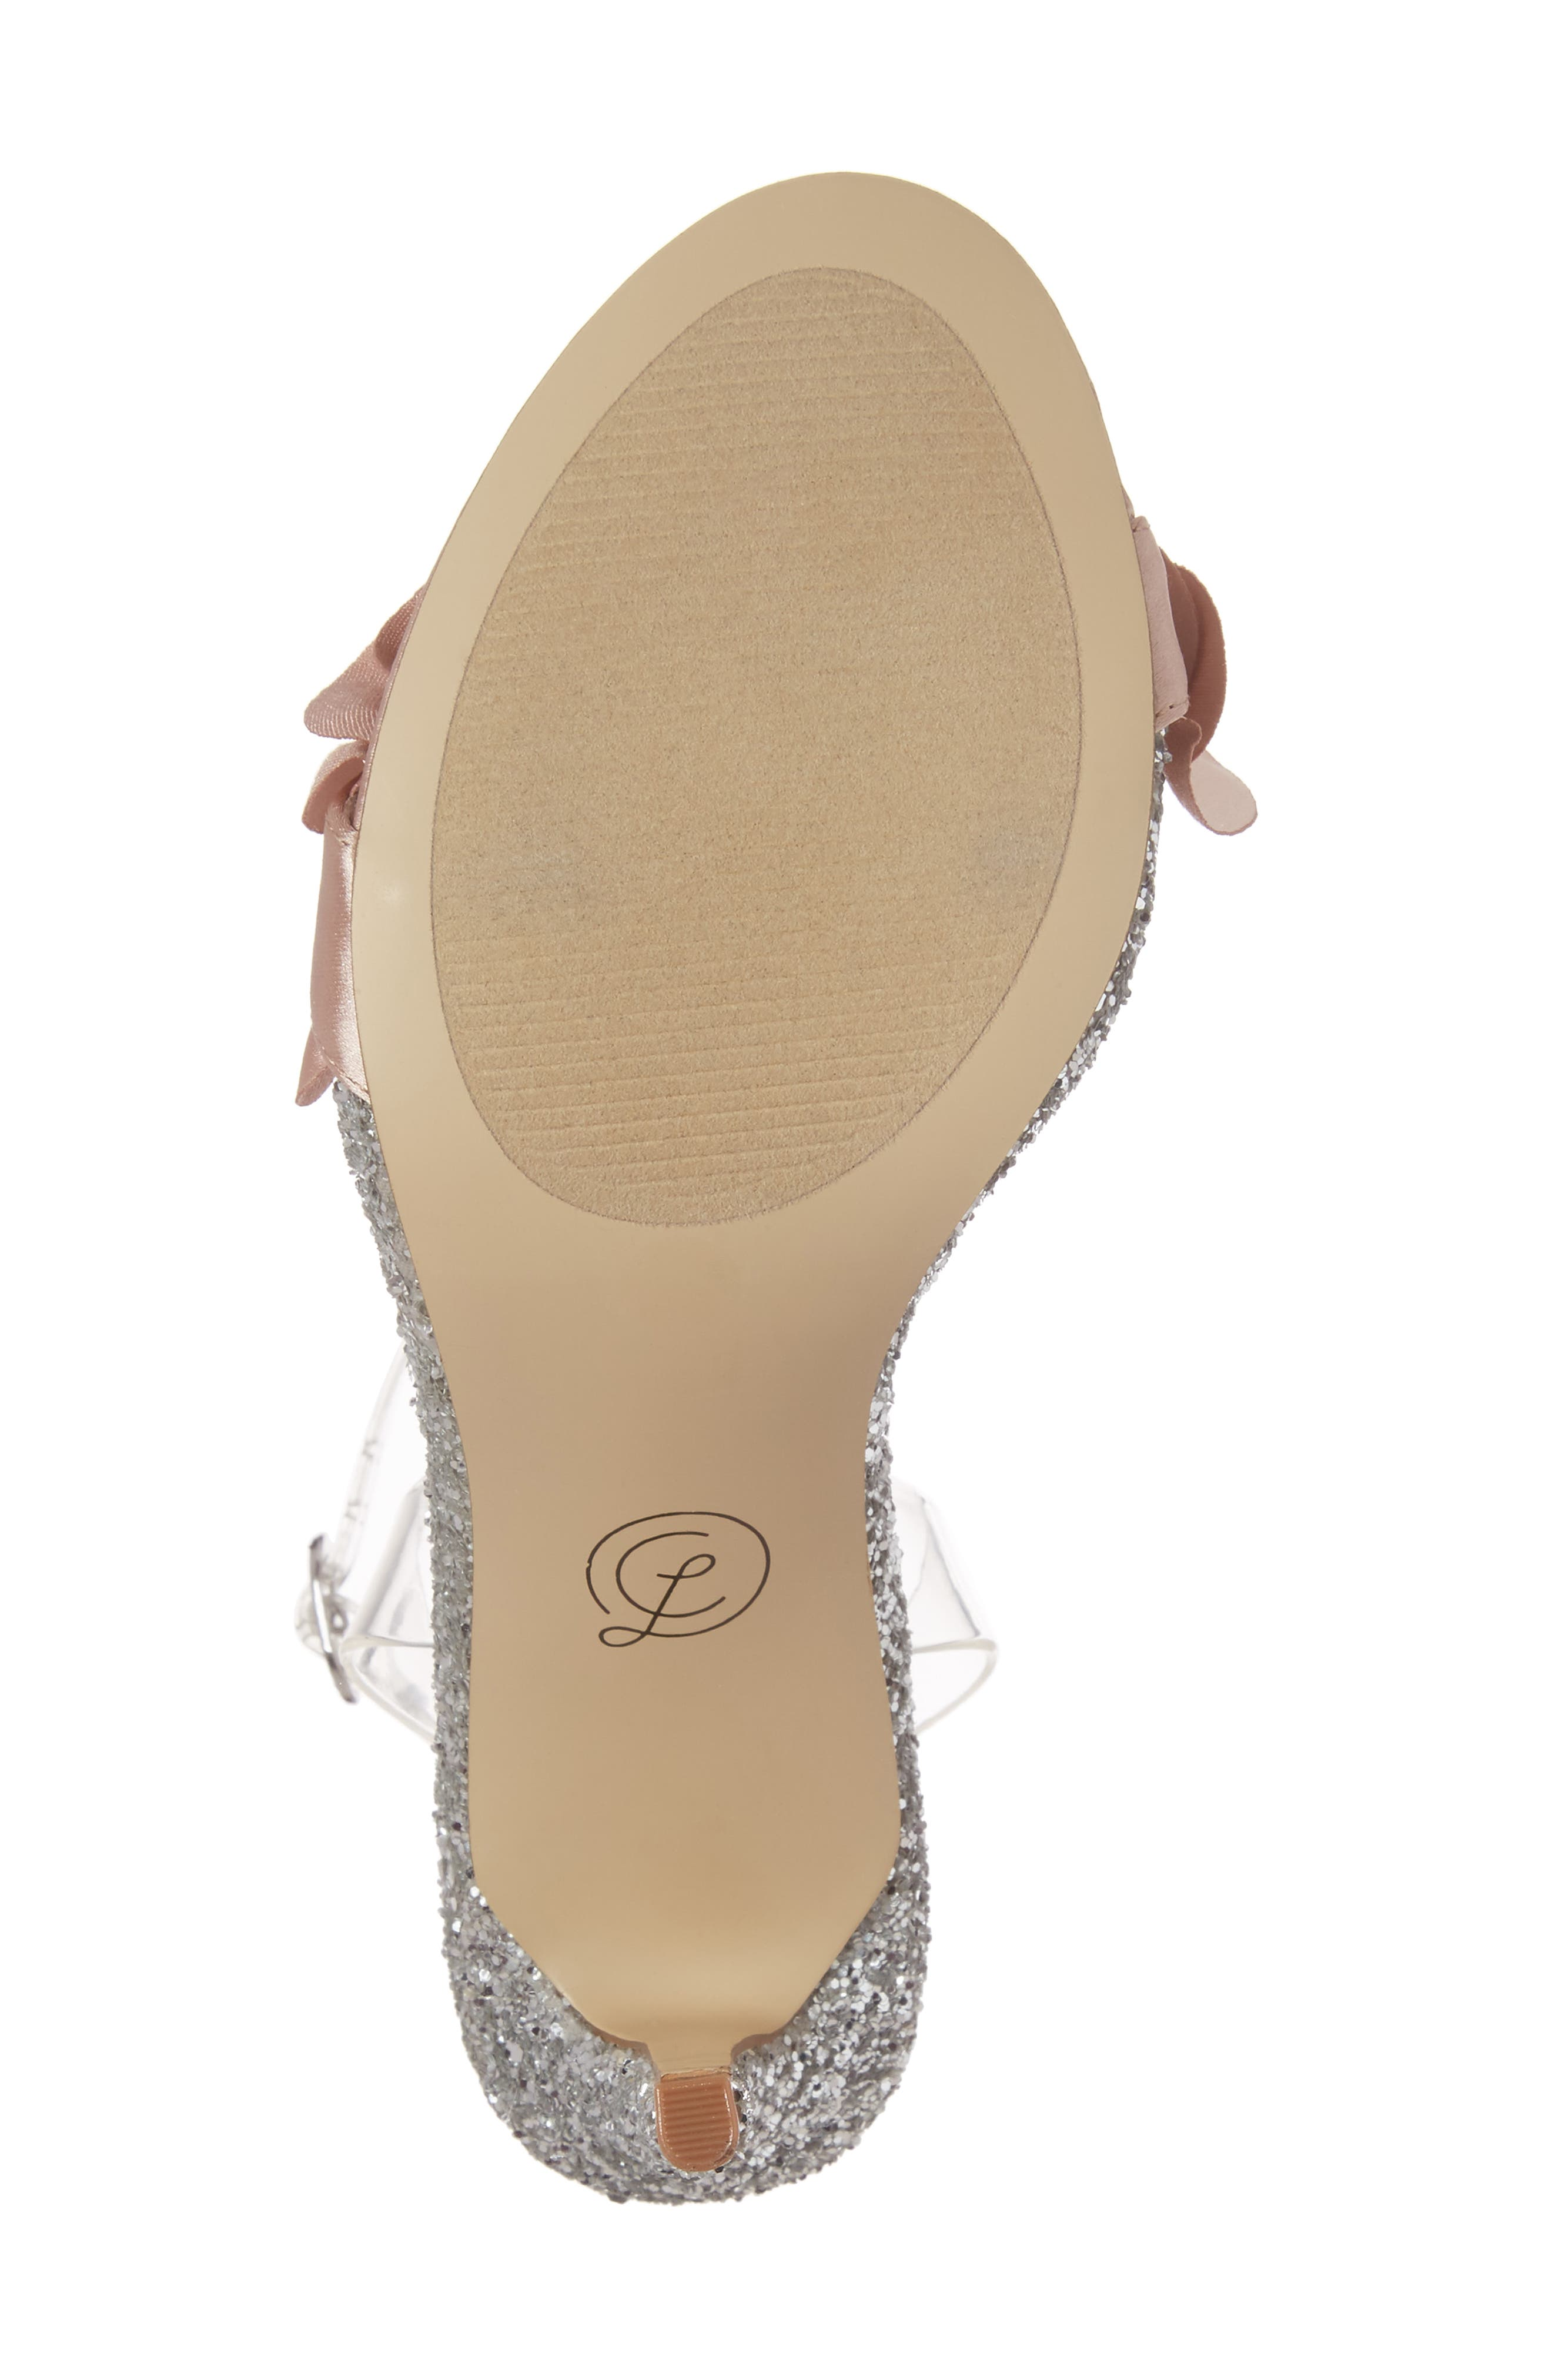 Janey Ruffled Sandal,                             Alternate thumbnail 6, color,                             Nude/ Clear